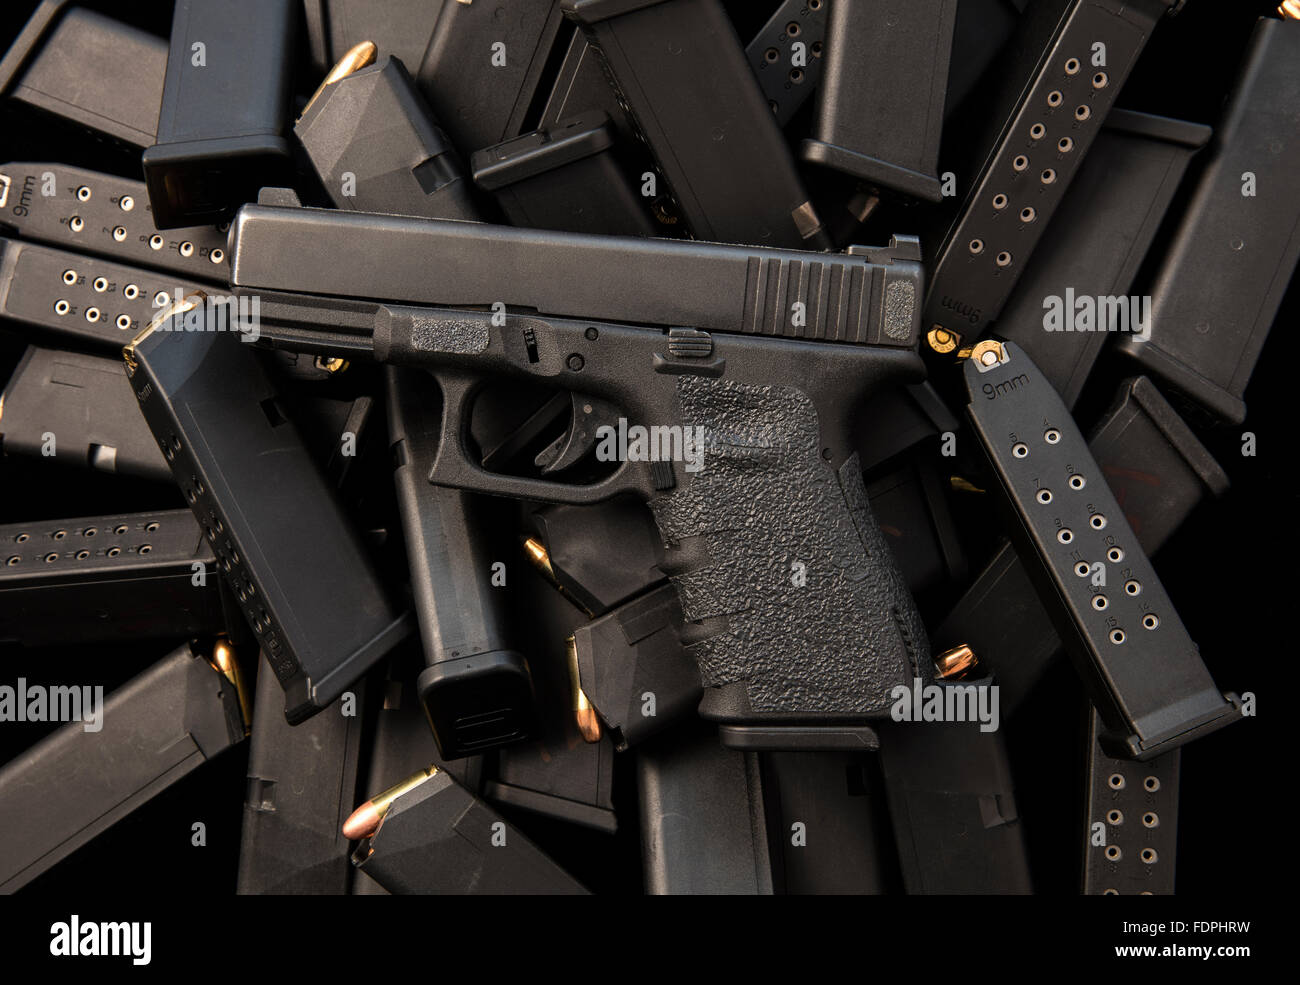 Glock semiautomatic 9mm handgun with high capacity magazines and ammunition - Stock Image